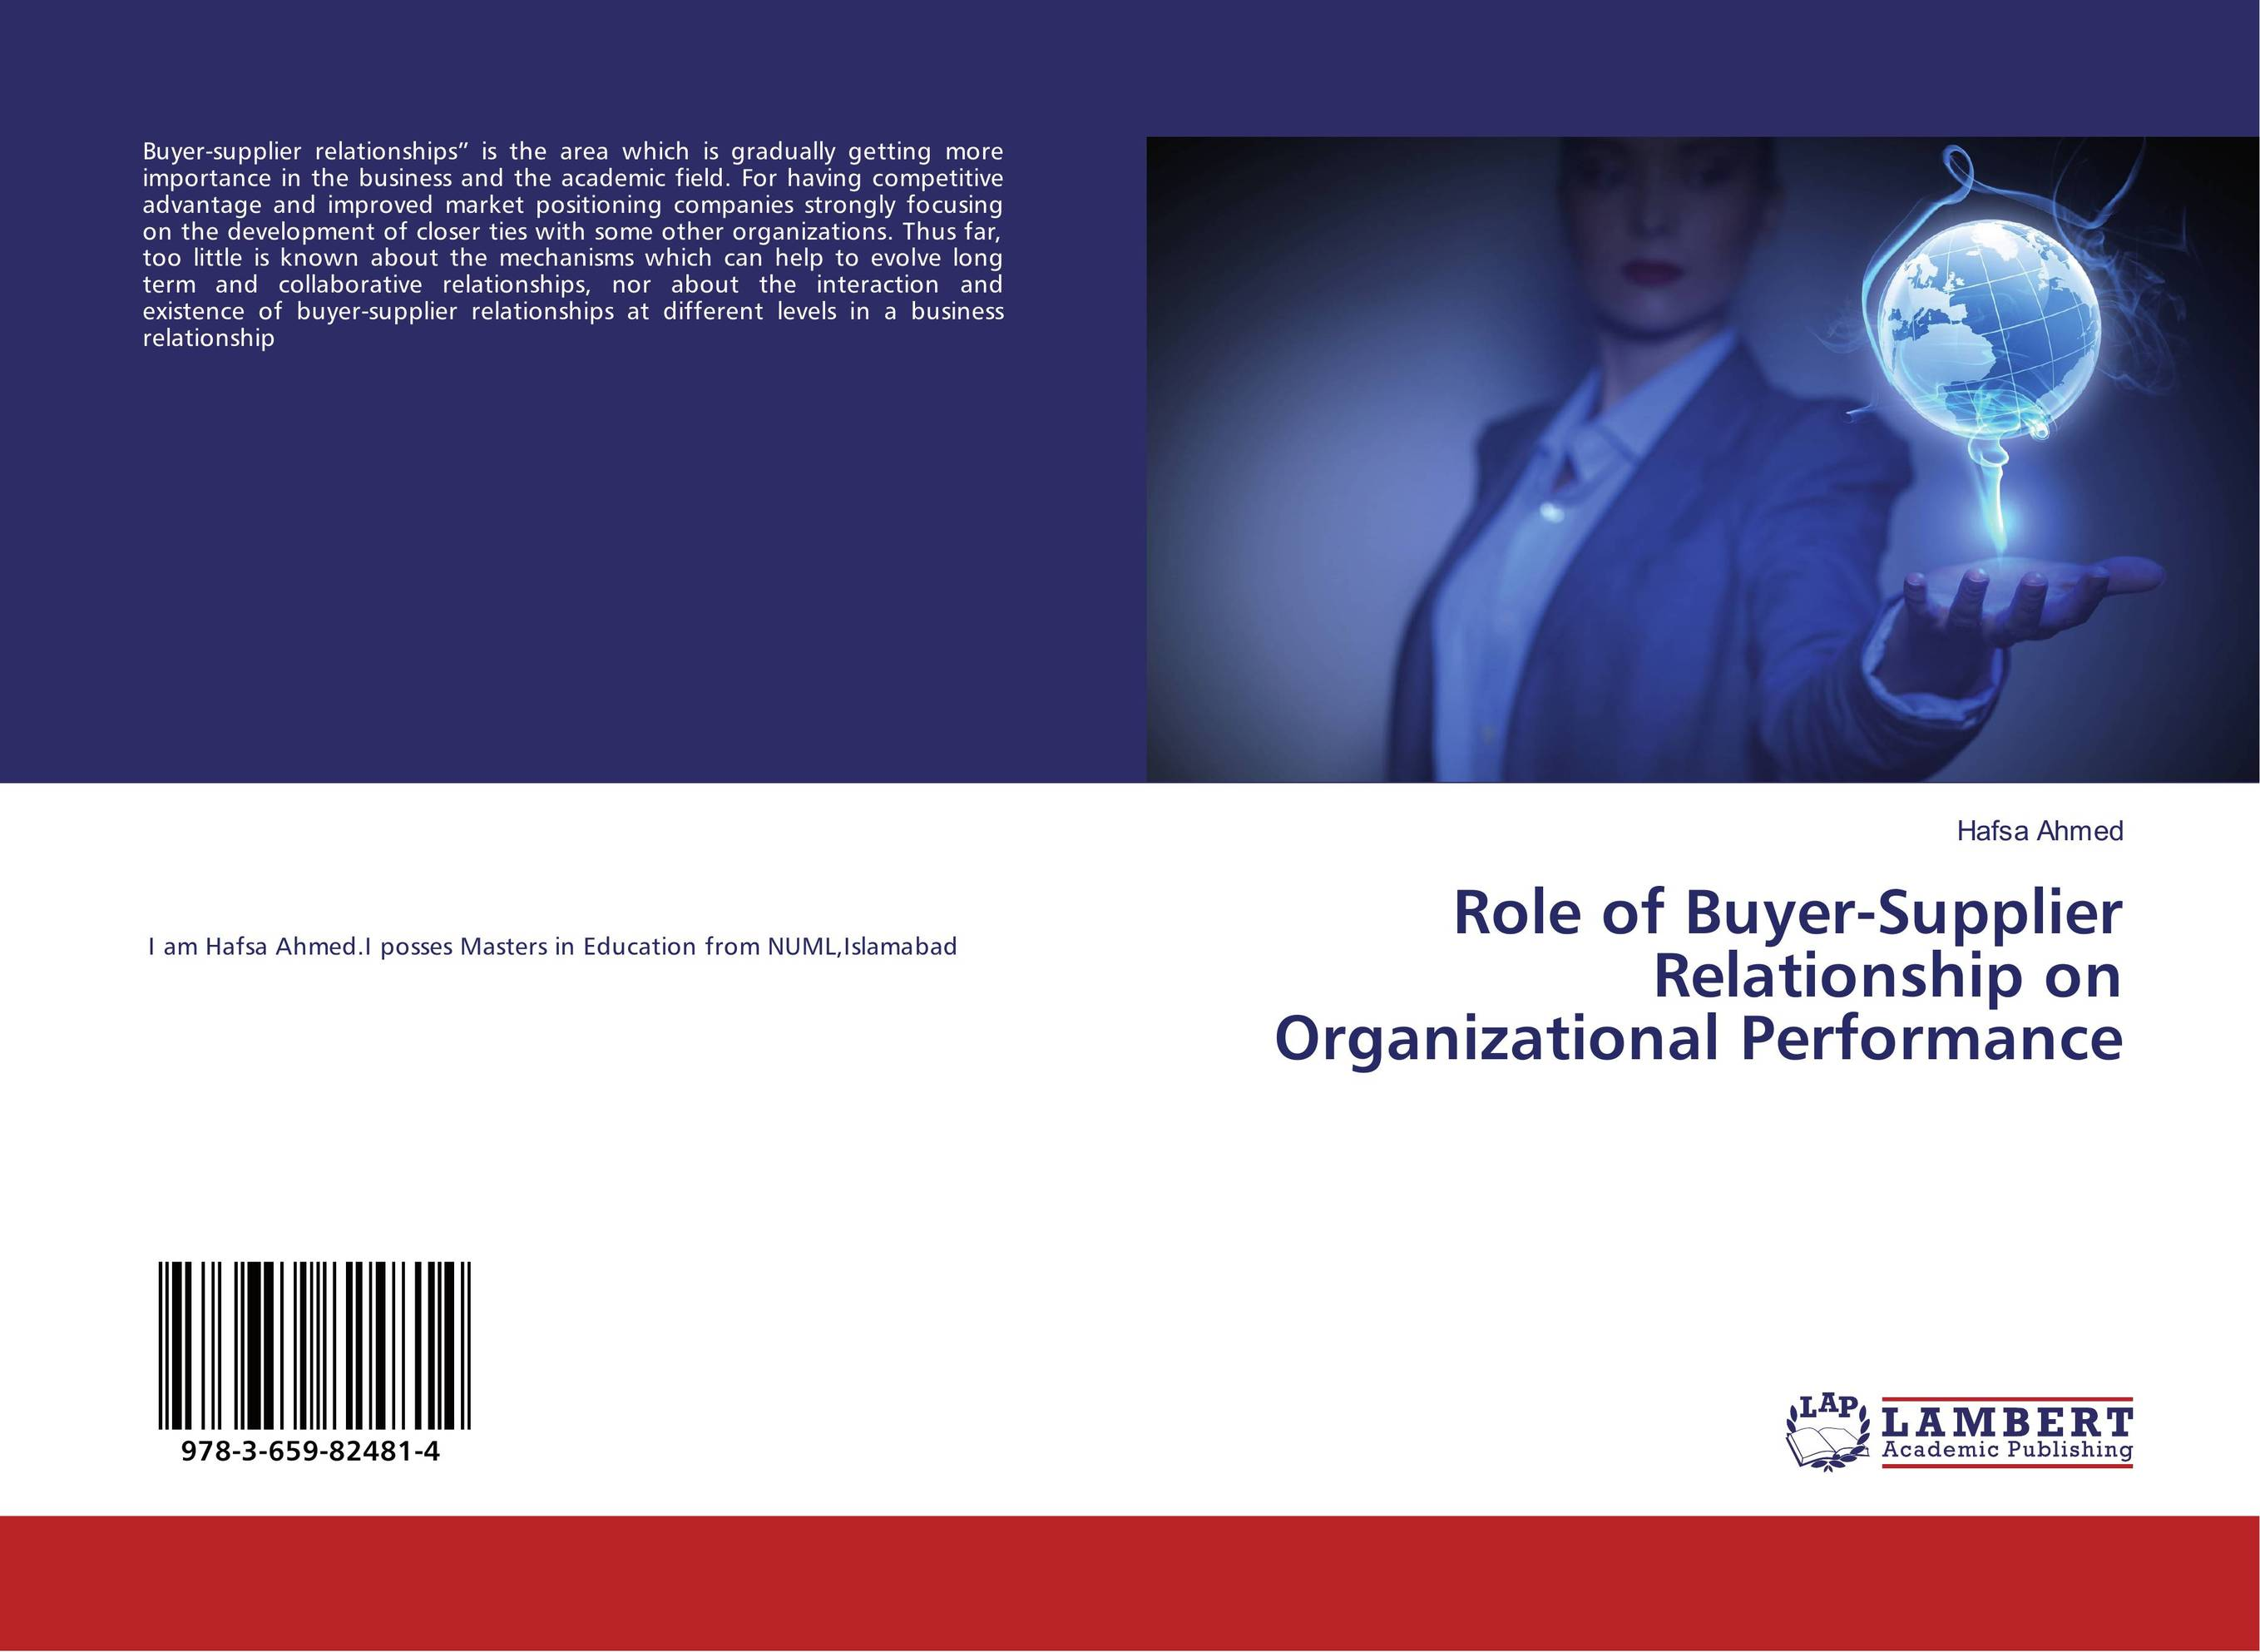 Role of Buyer-Supplier Relationship on Organizational Performance